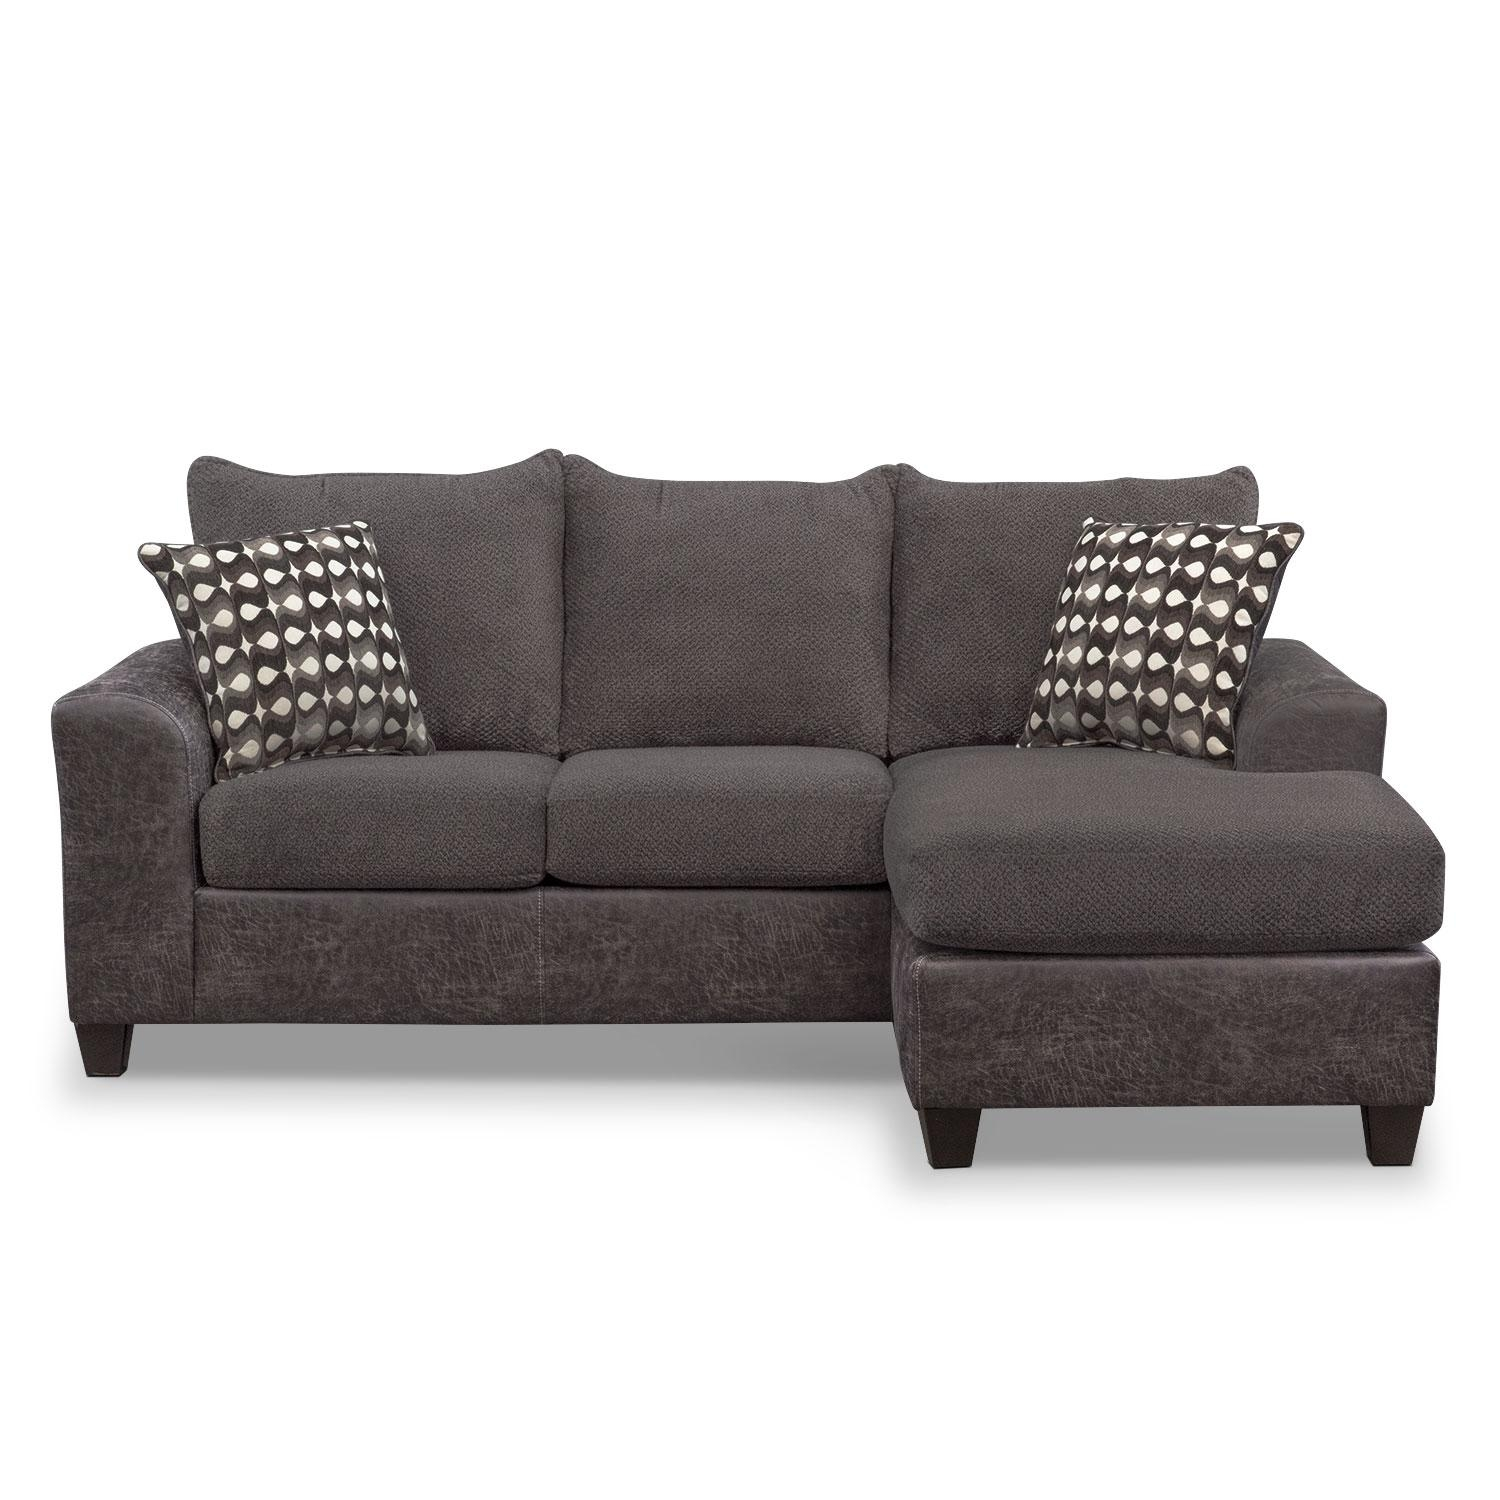 value city furniture marco chaise sofa blu dot mono 20 best ideas sofas